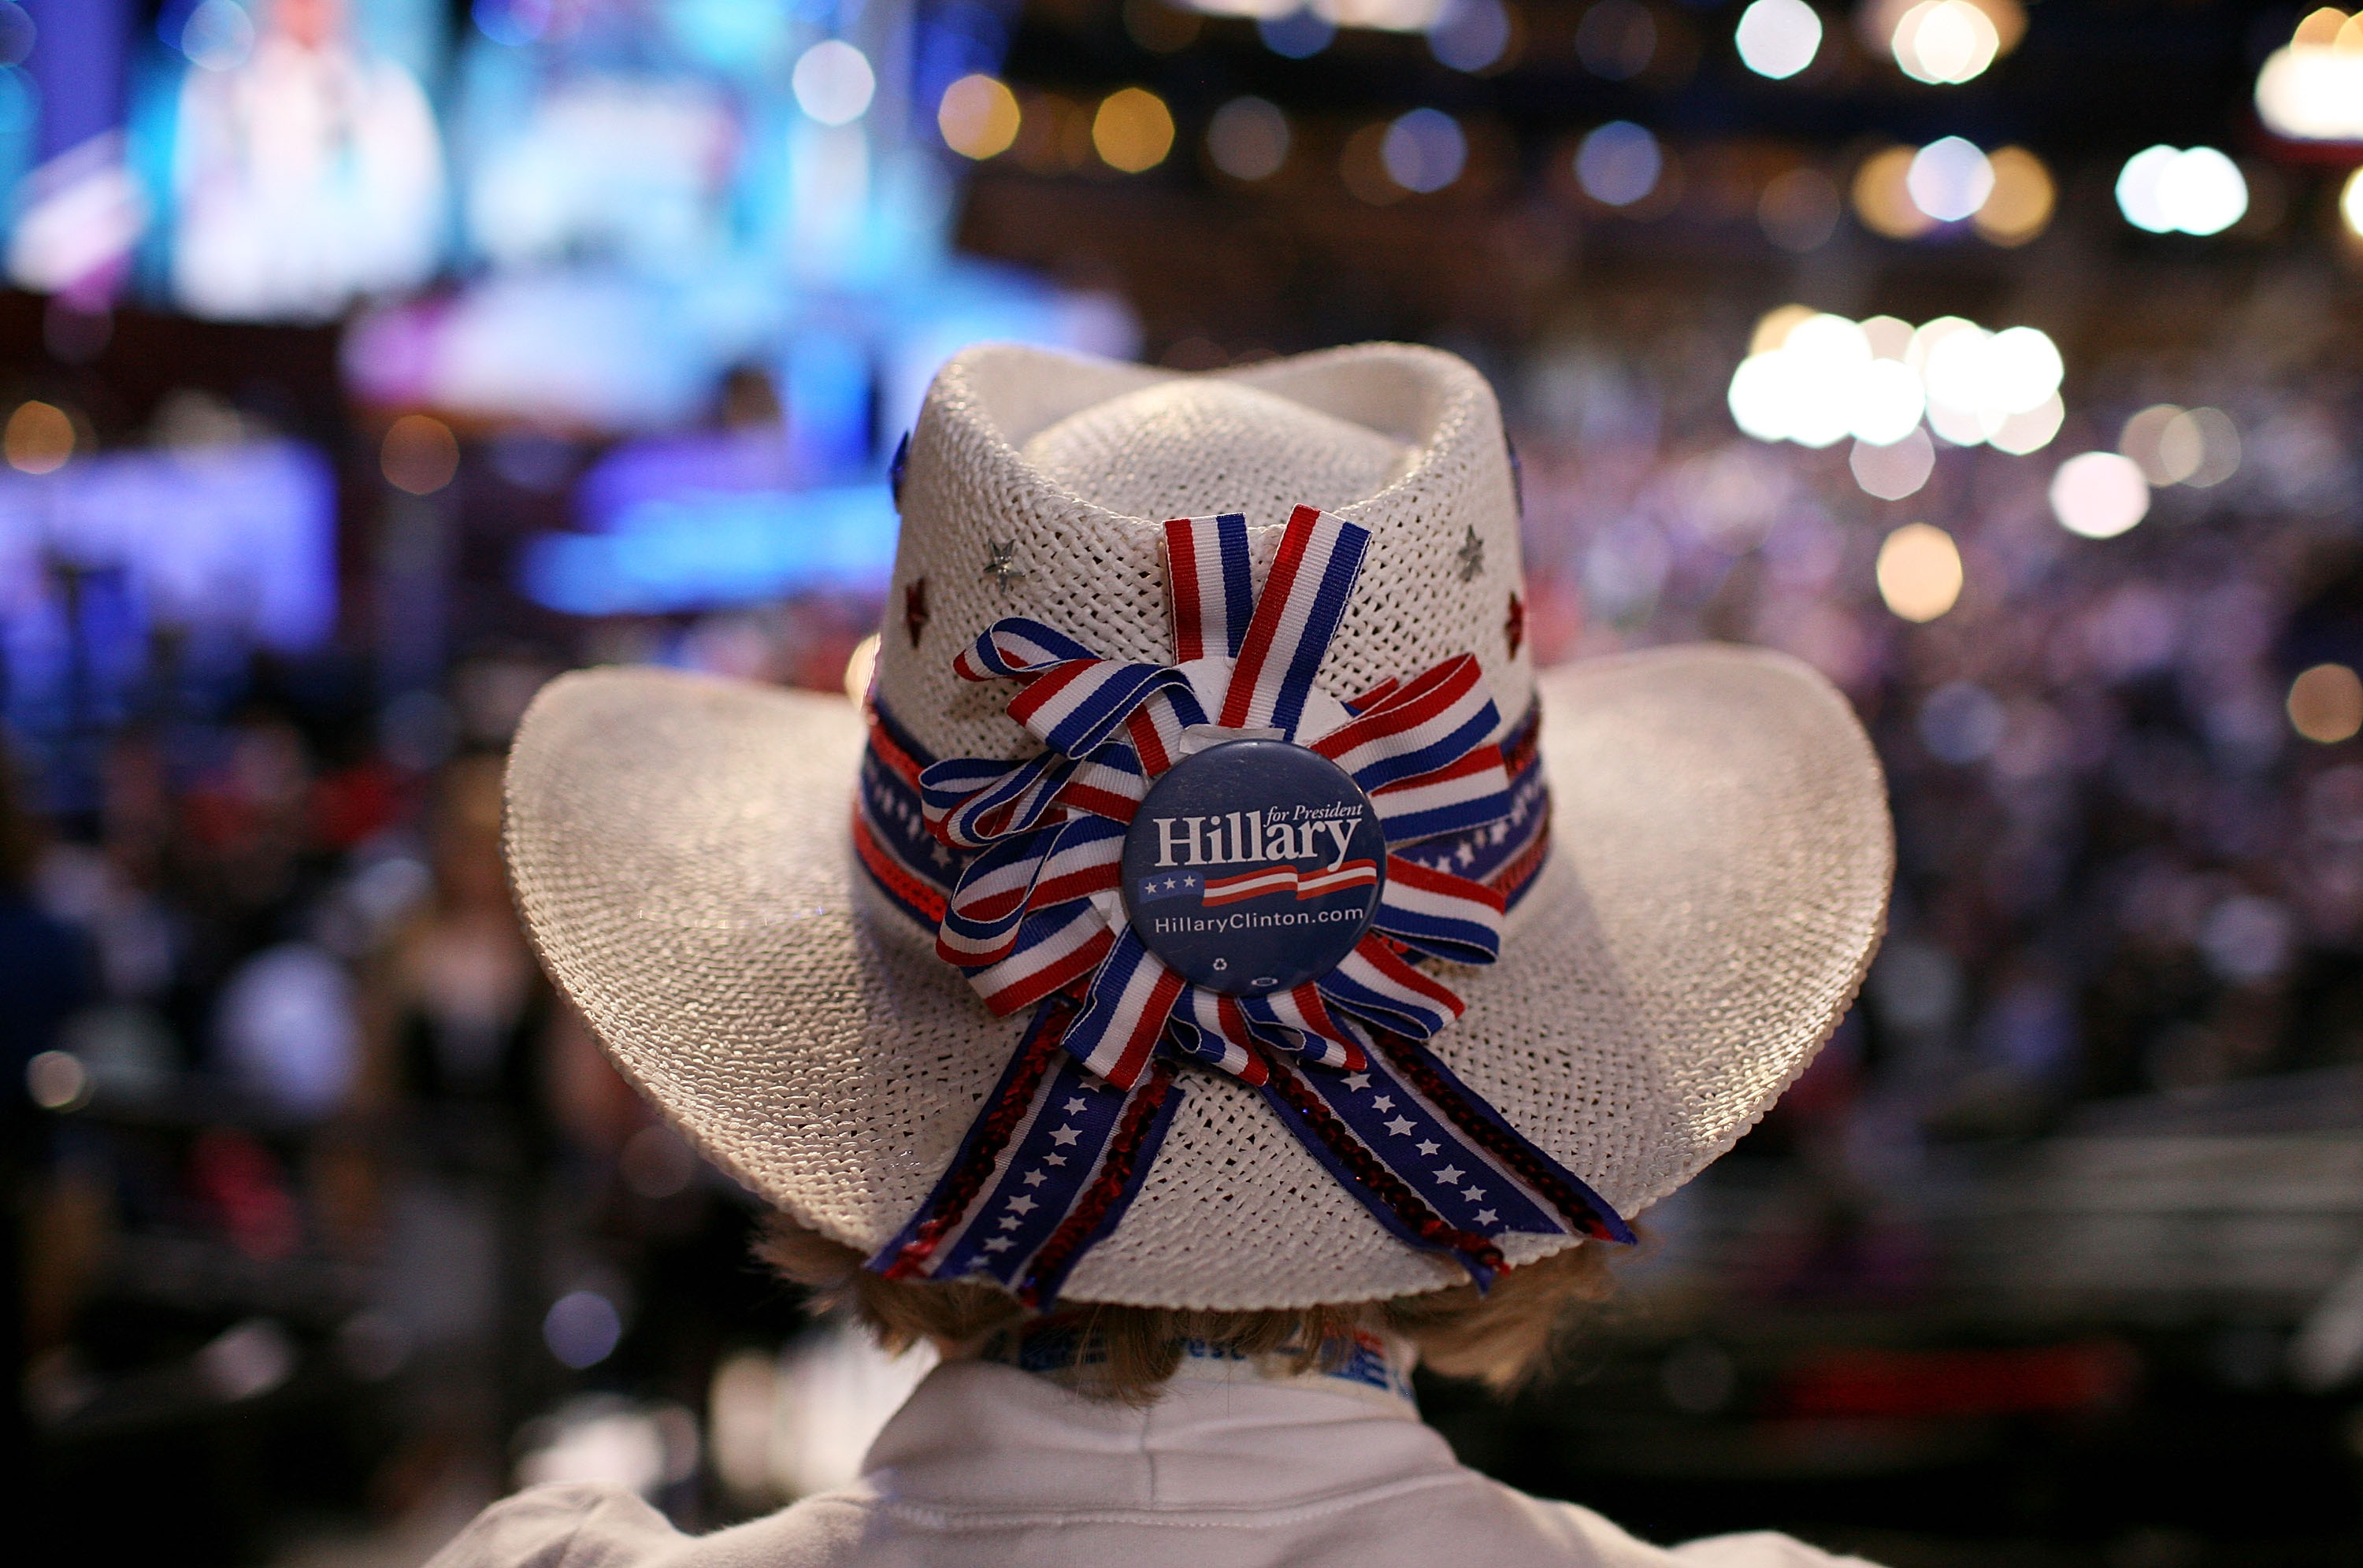 A women wears a hat supporting Sen Hillary Clinton (D-NY) during day two of the 2008 Democratic National Convention in Denver, Colorado. (Photo by Justin Sullivan/Getty Images)